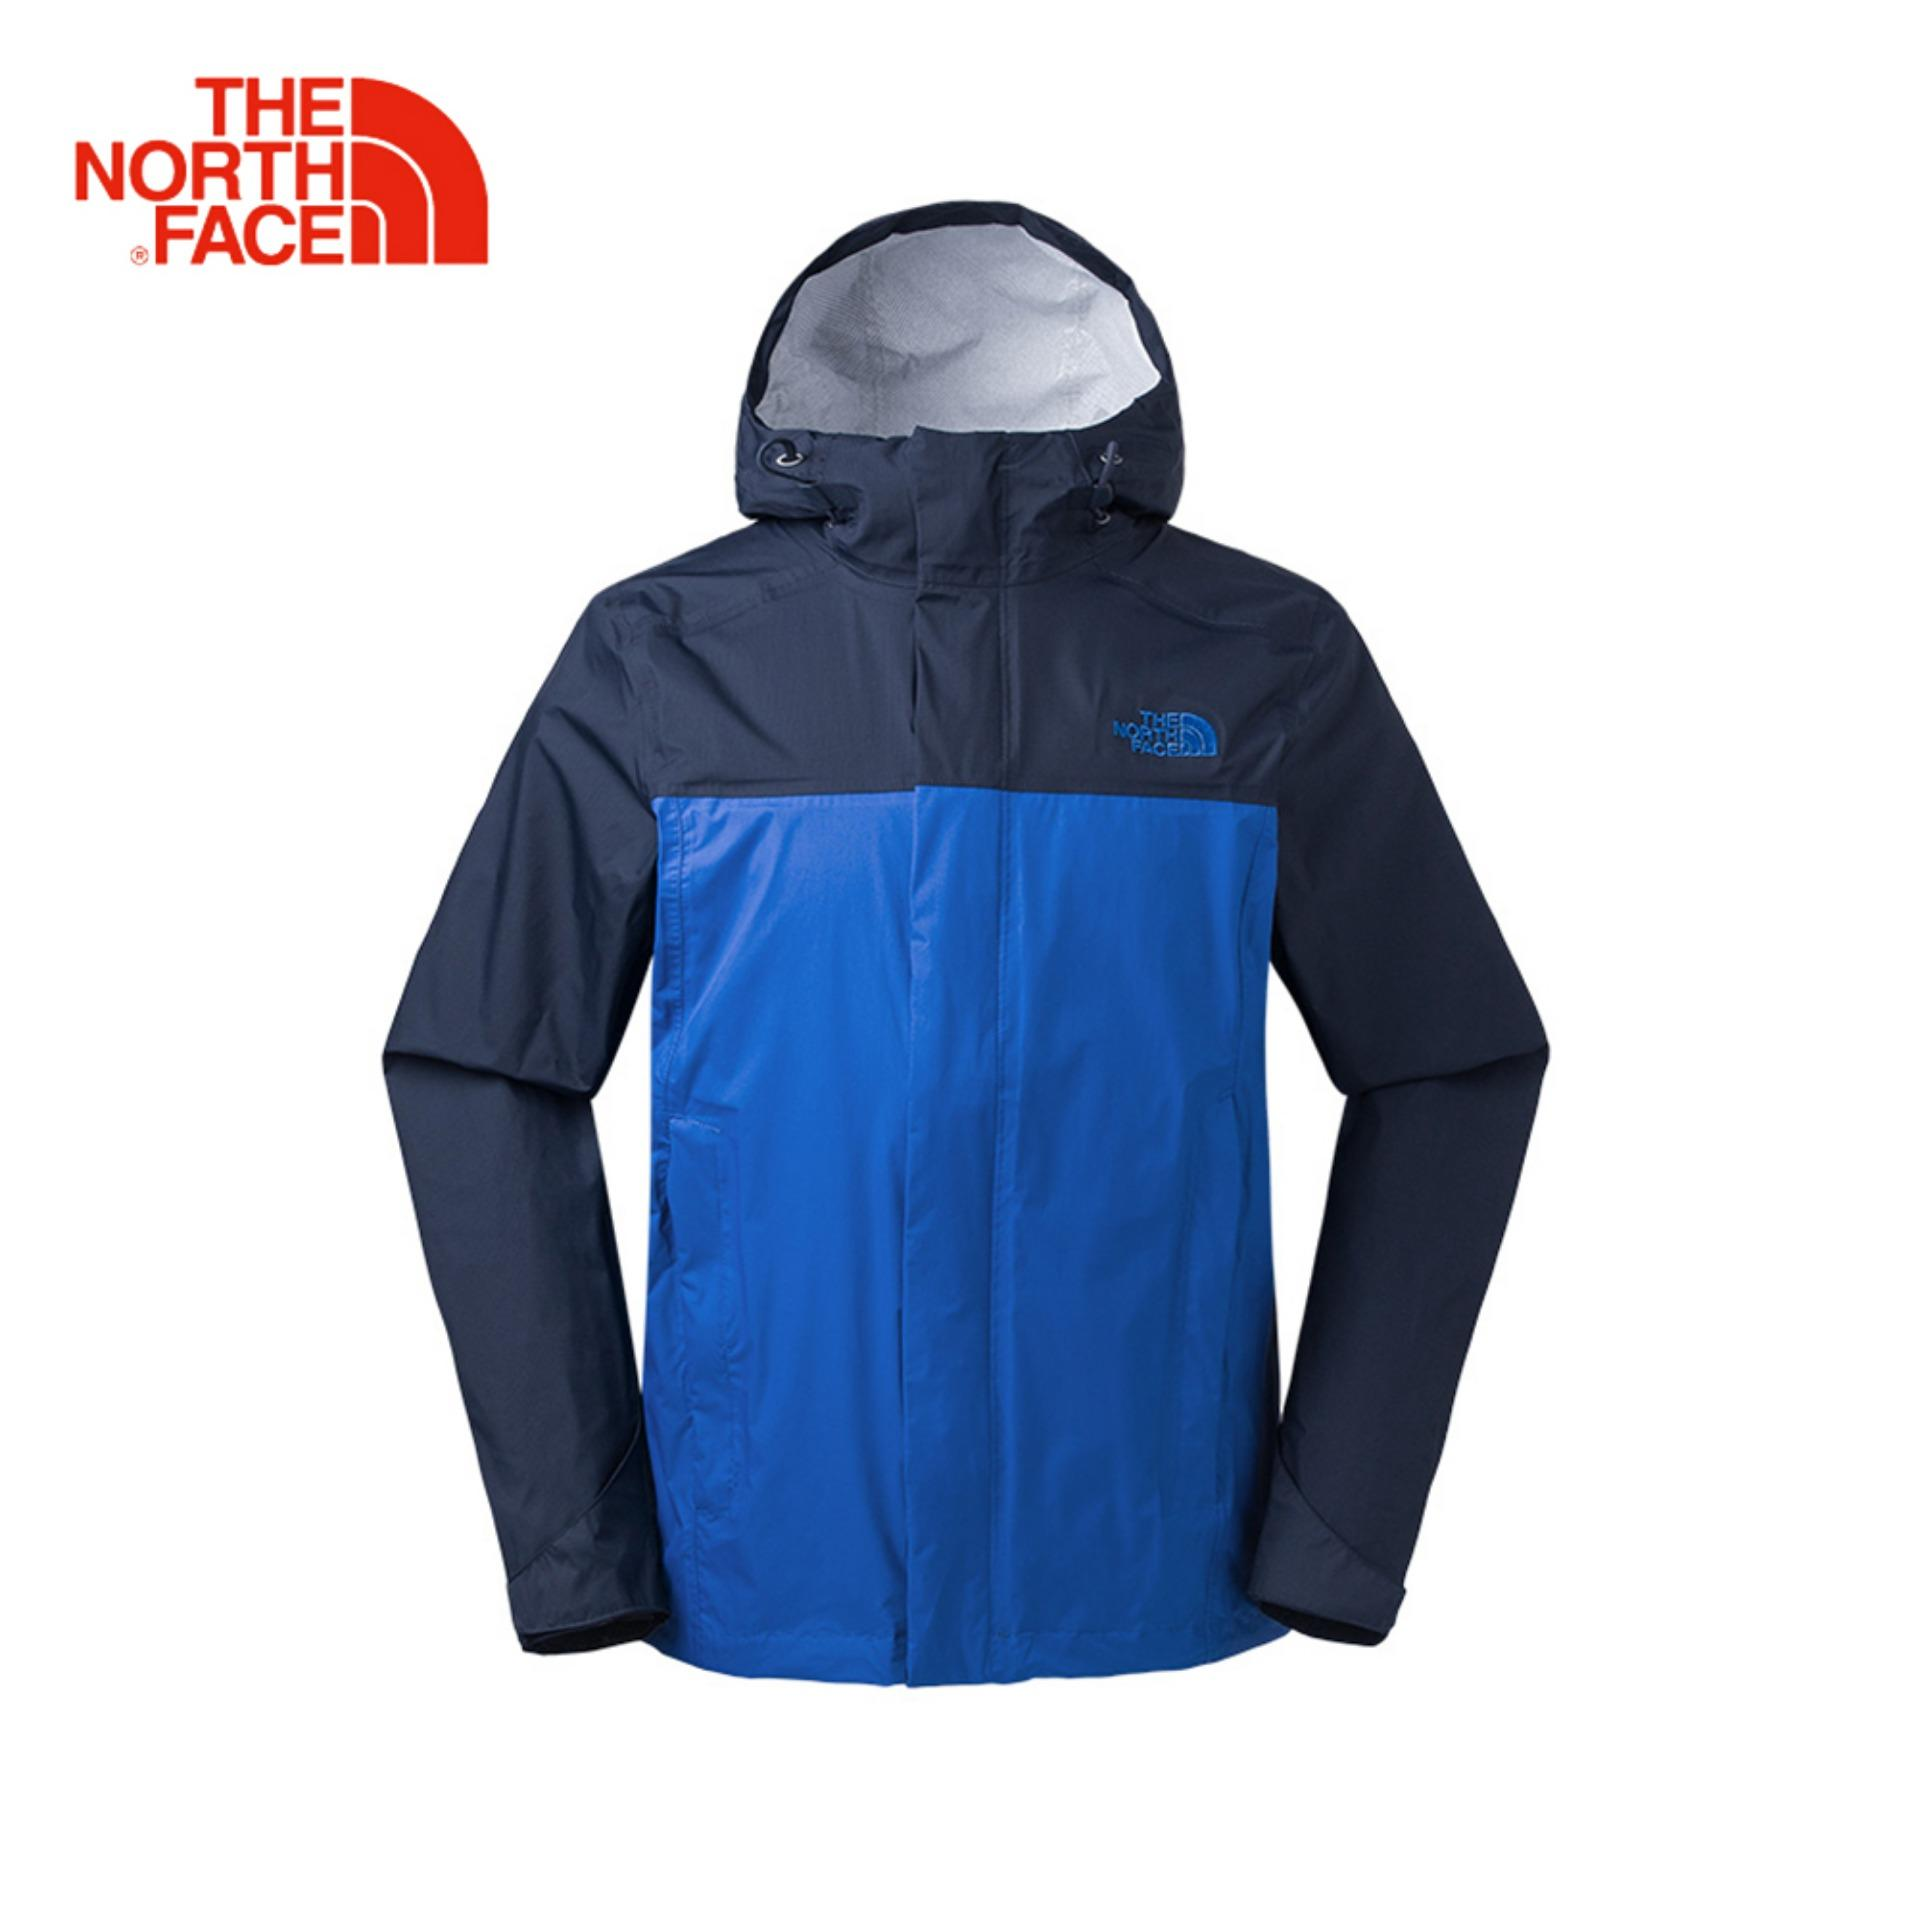 The North Face Philippines  The North Face price list - Laptop ... d9b4cfa26